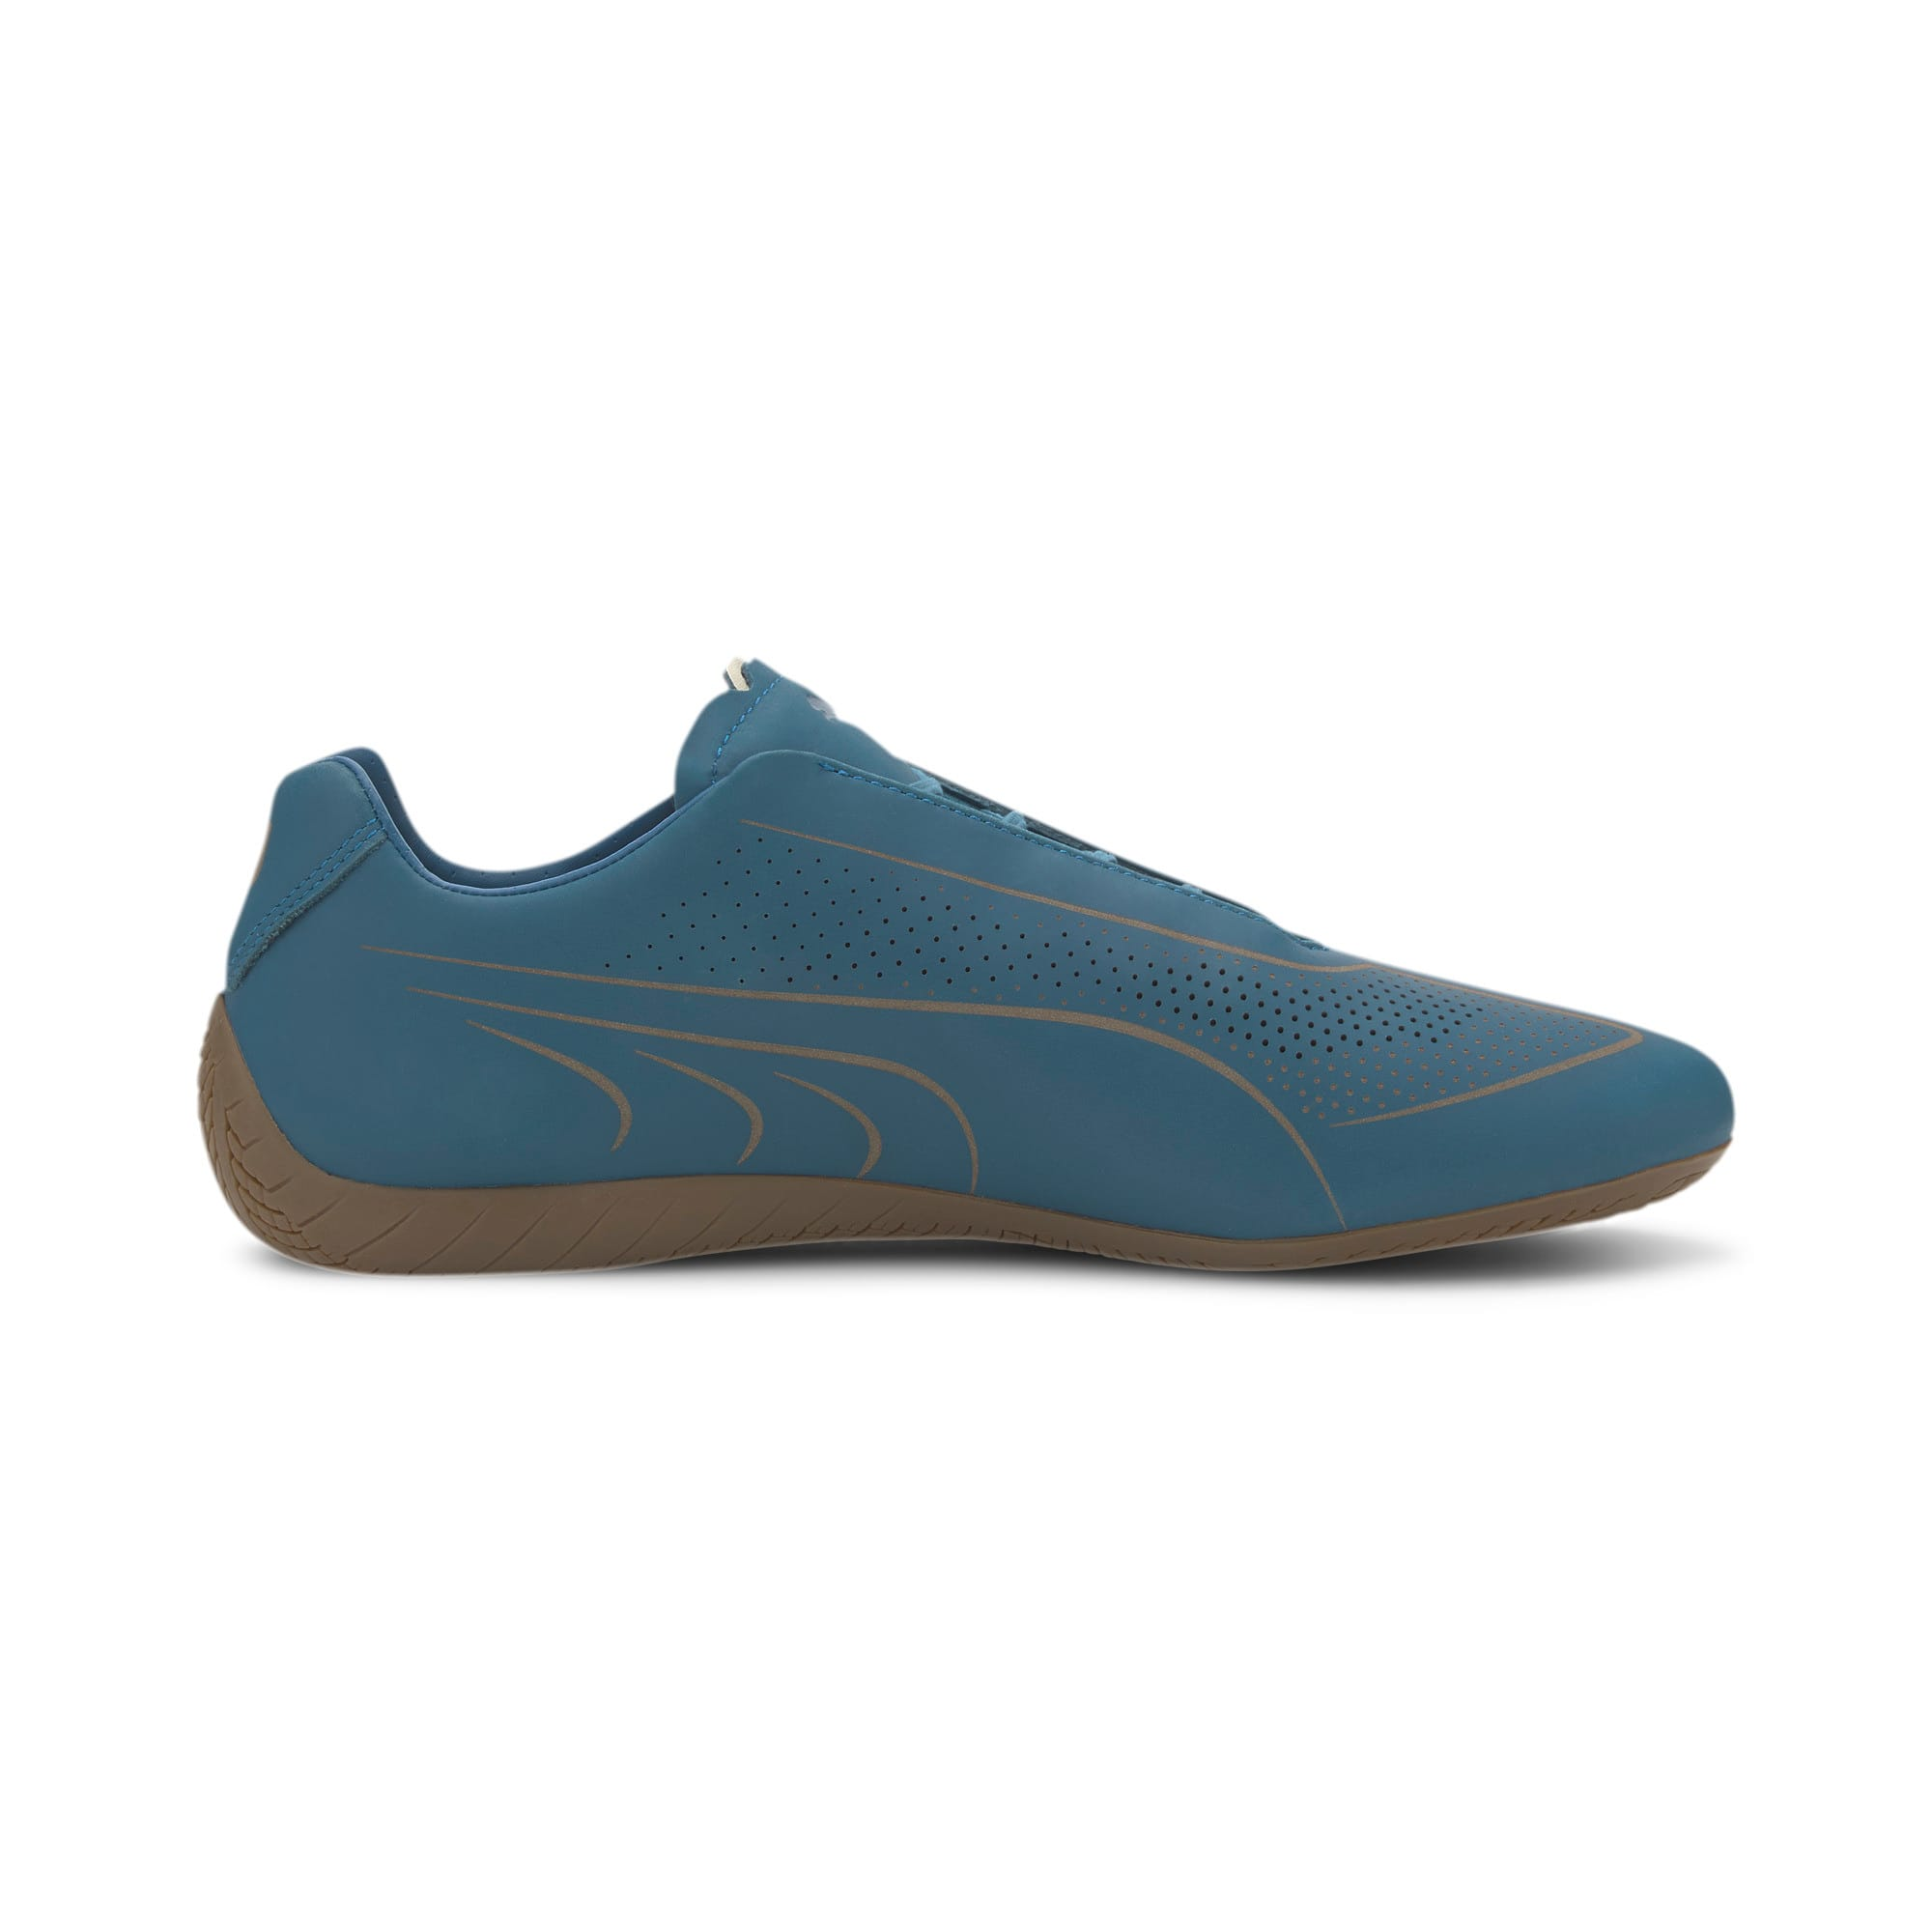 Thumbnail 5 of Porsche Design Speedcat Lux Nubuck Men's Shoes, Moroccan Blue-Moroccan Blue, medium